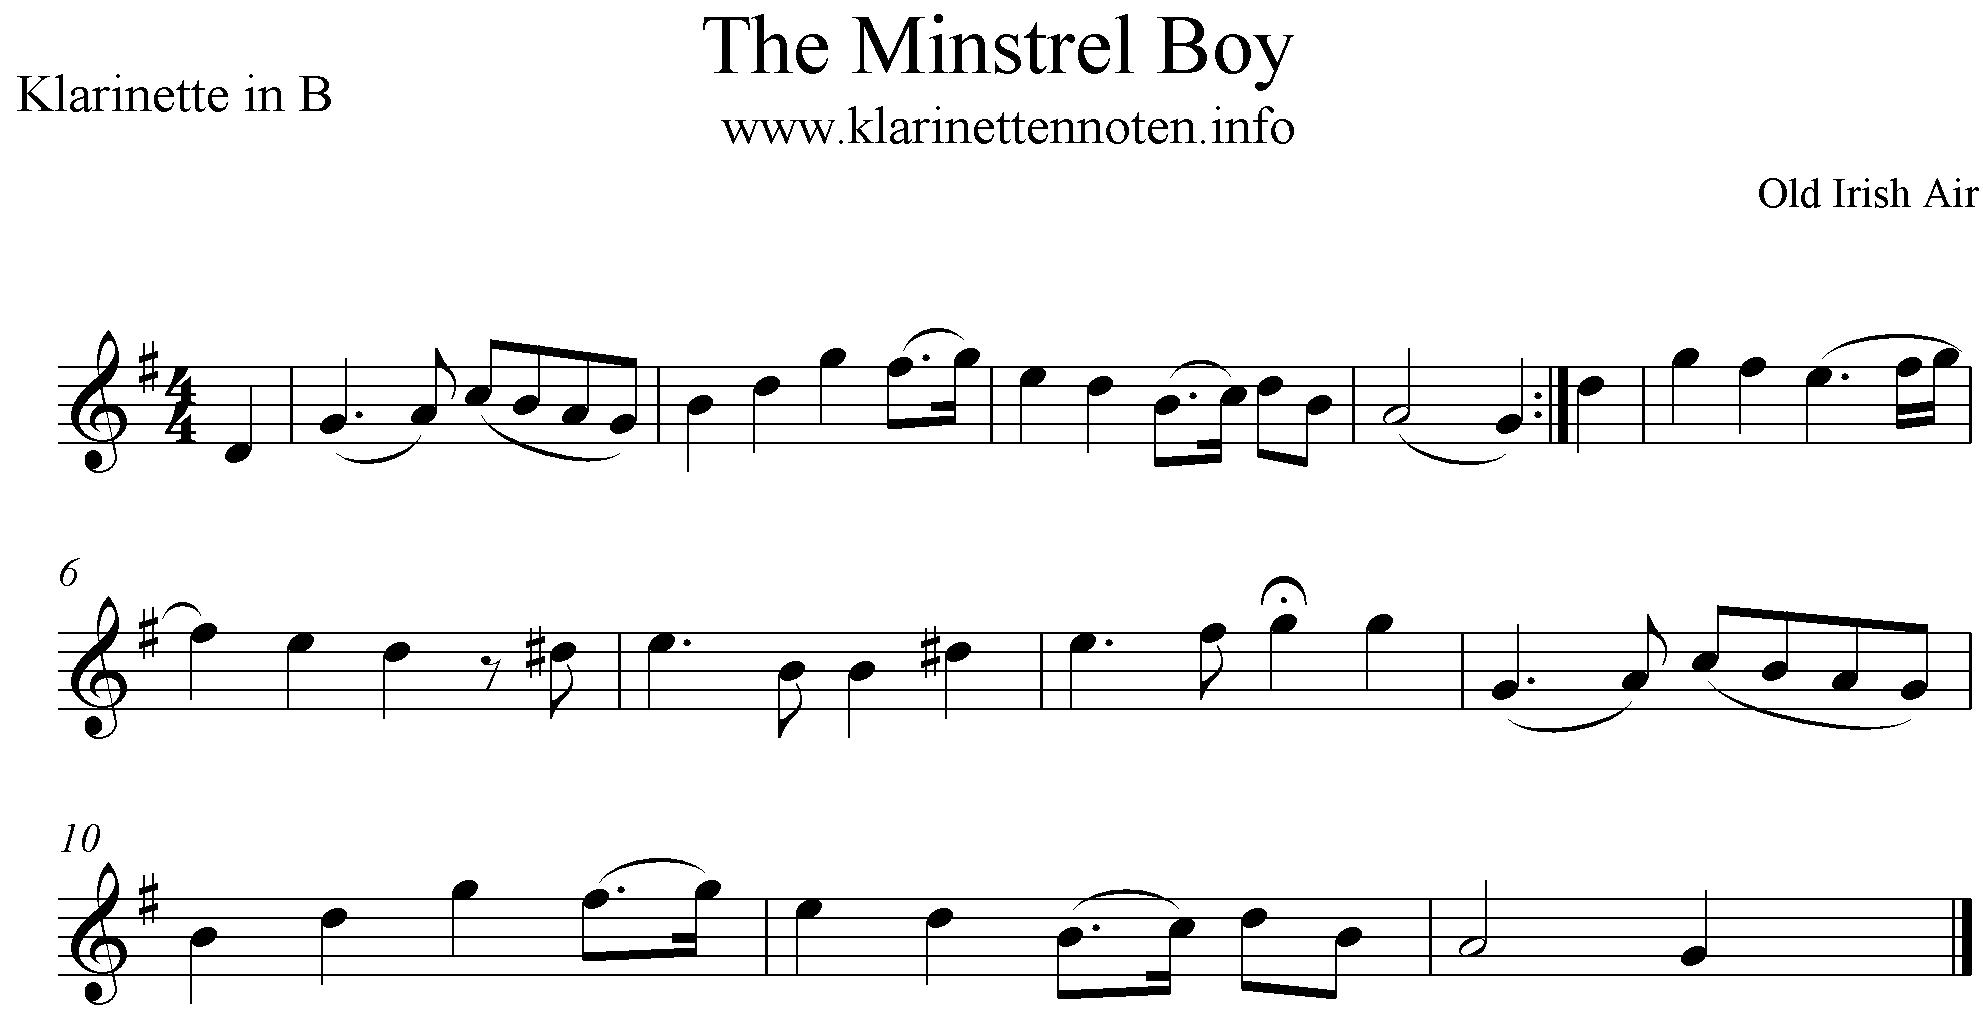 The Minstrel Boy Clarinet, Klarinette